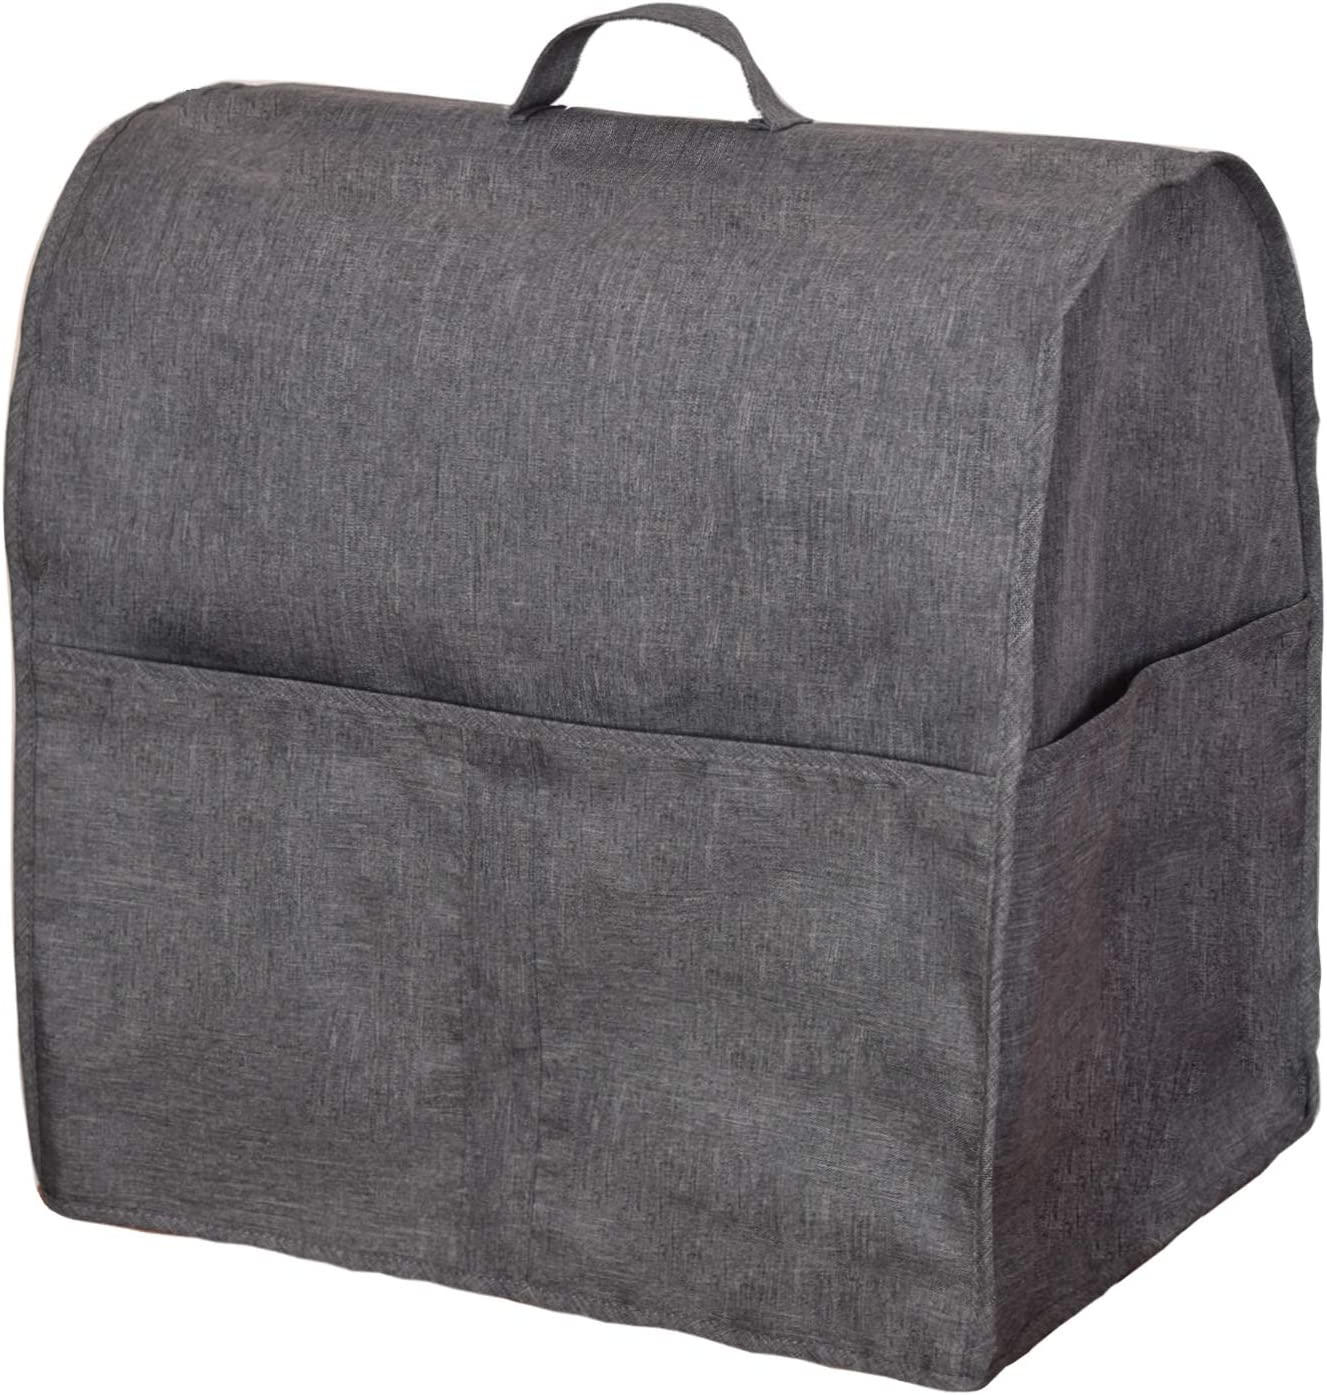 Fits for 4.5-Quart and All 5-Quart, Wine Red Cloth Cover with Pockets for KitchenAid Mixers and Extra Accessories Dust Cover with 4.5-5 Quart KitchenAid Mixers